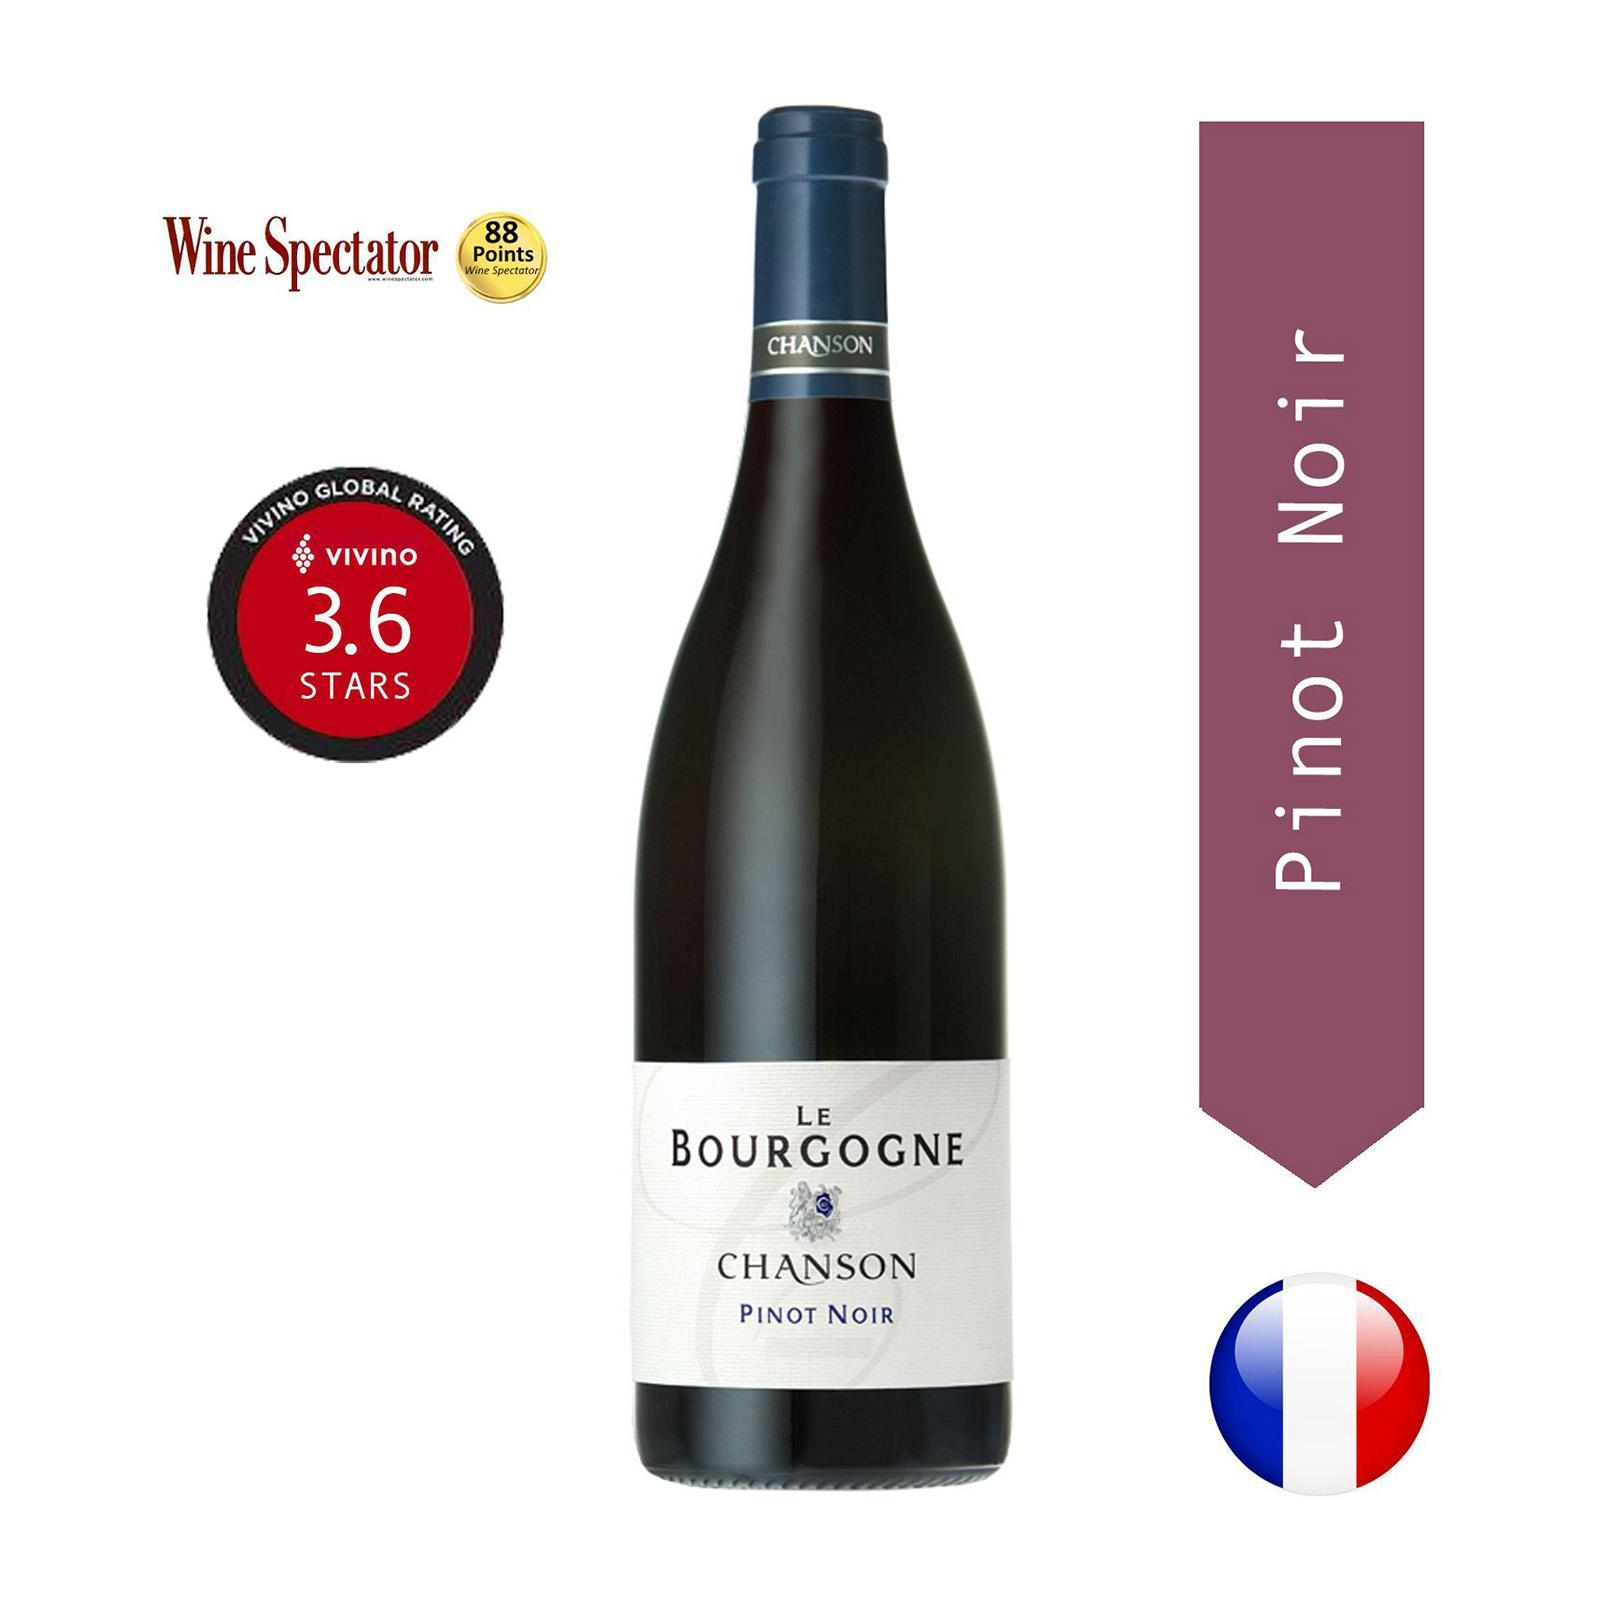 Chanson - Bourgogne Pinot Noir - Red Wine - Burgundy - By The Vintage Wine Club